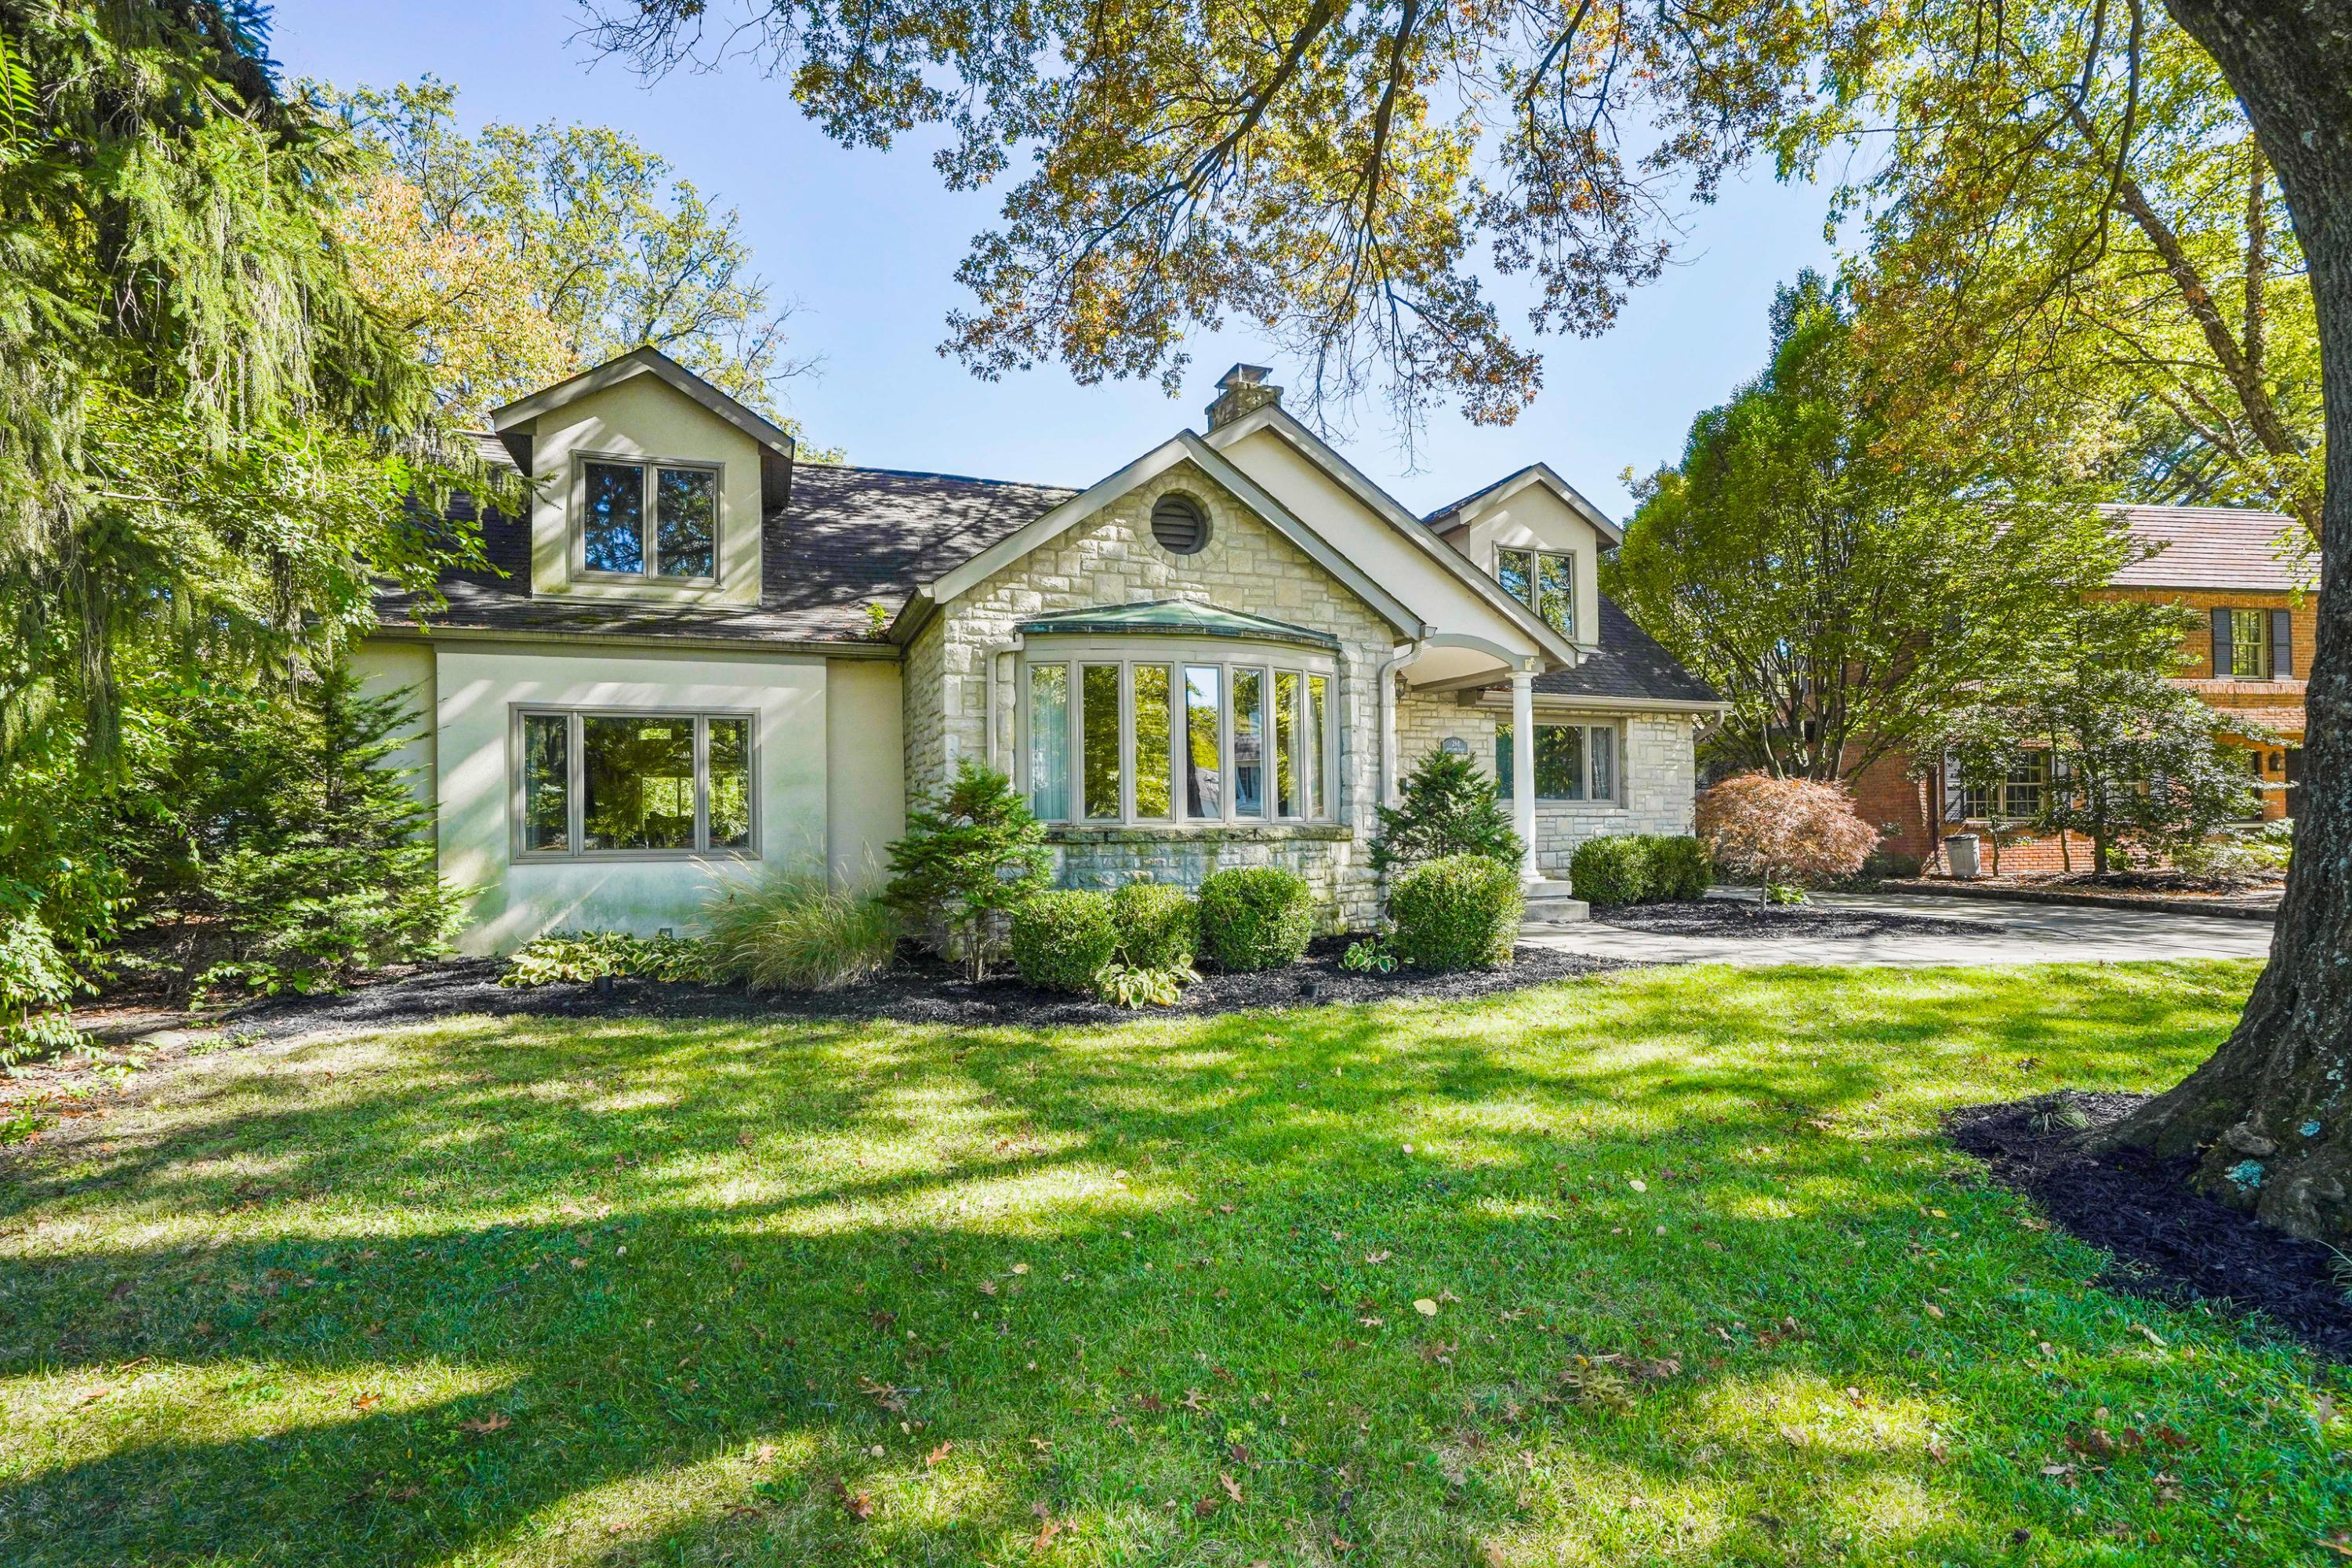 268 Ashbourne Place, Bexley, Ohio 43209, 4 Bedrooms Bedrooms, ,5 BathroomsBathrooms,Residential,For Sale,Ashbourne,221001154